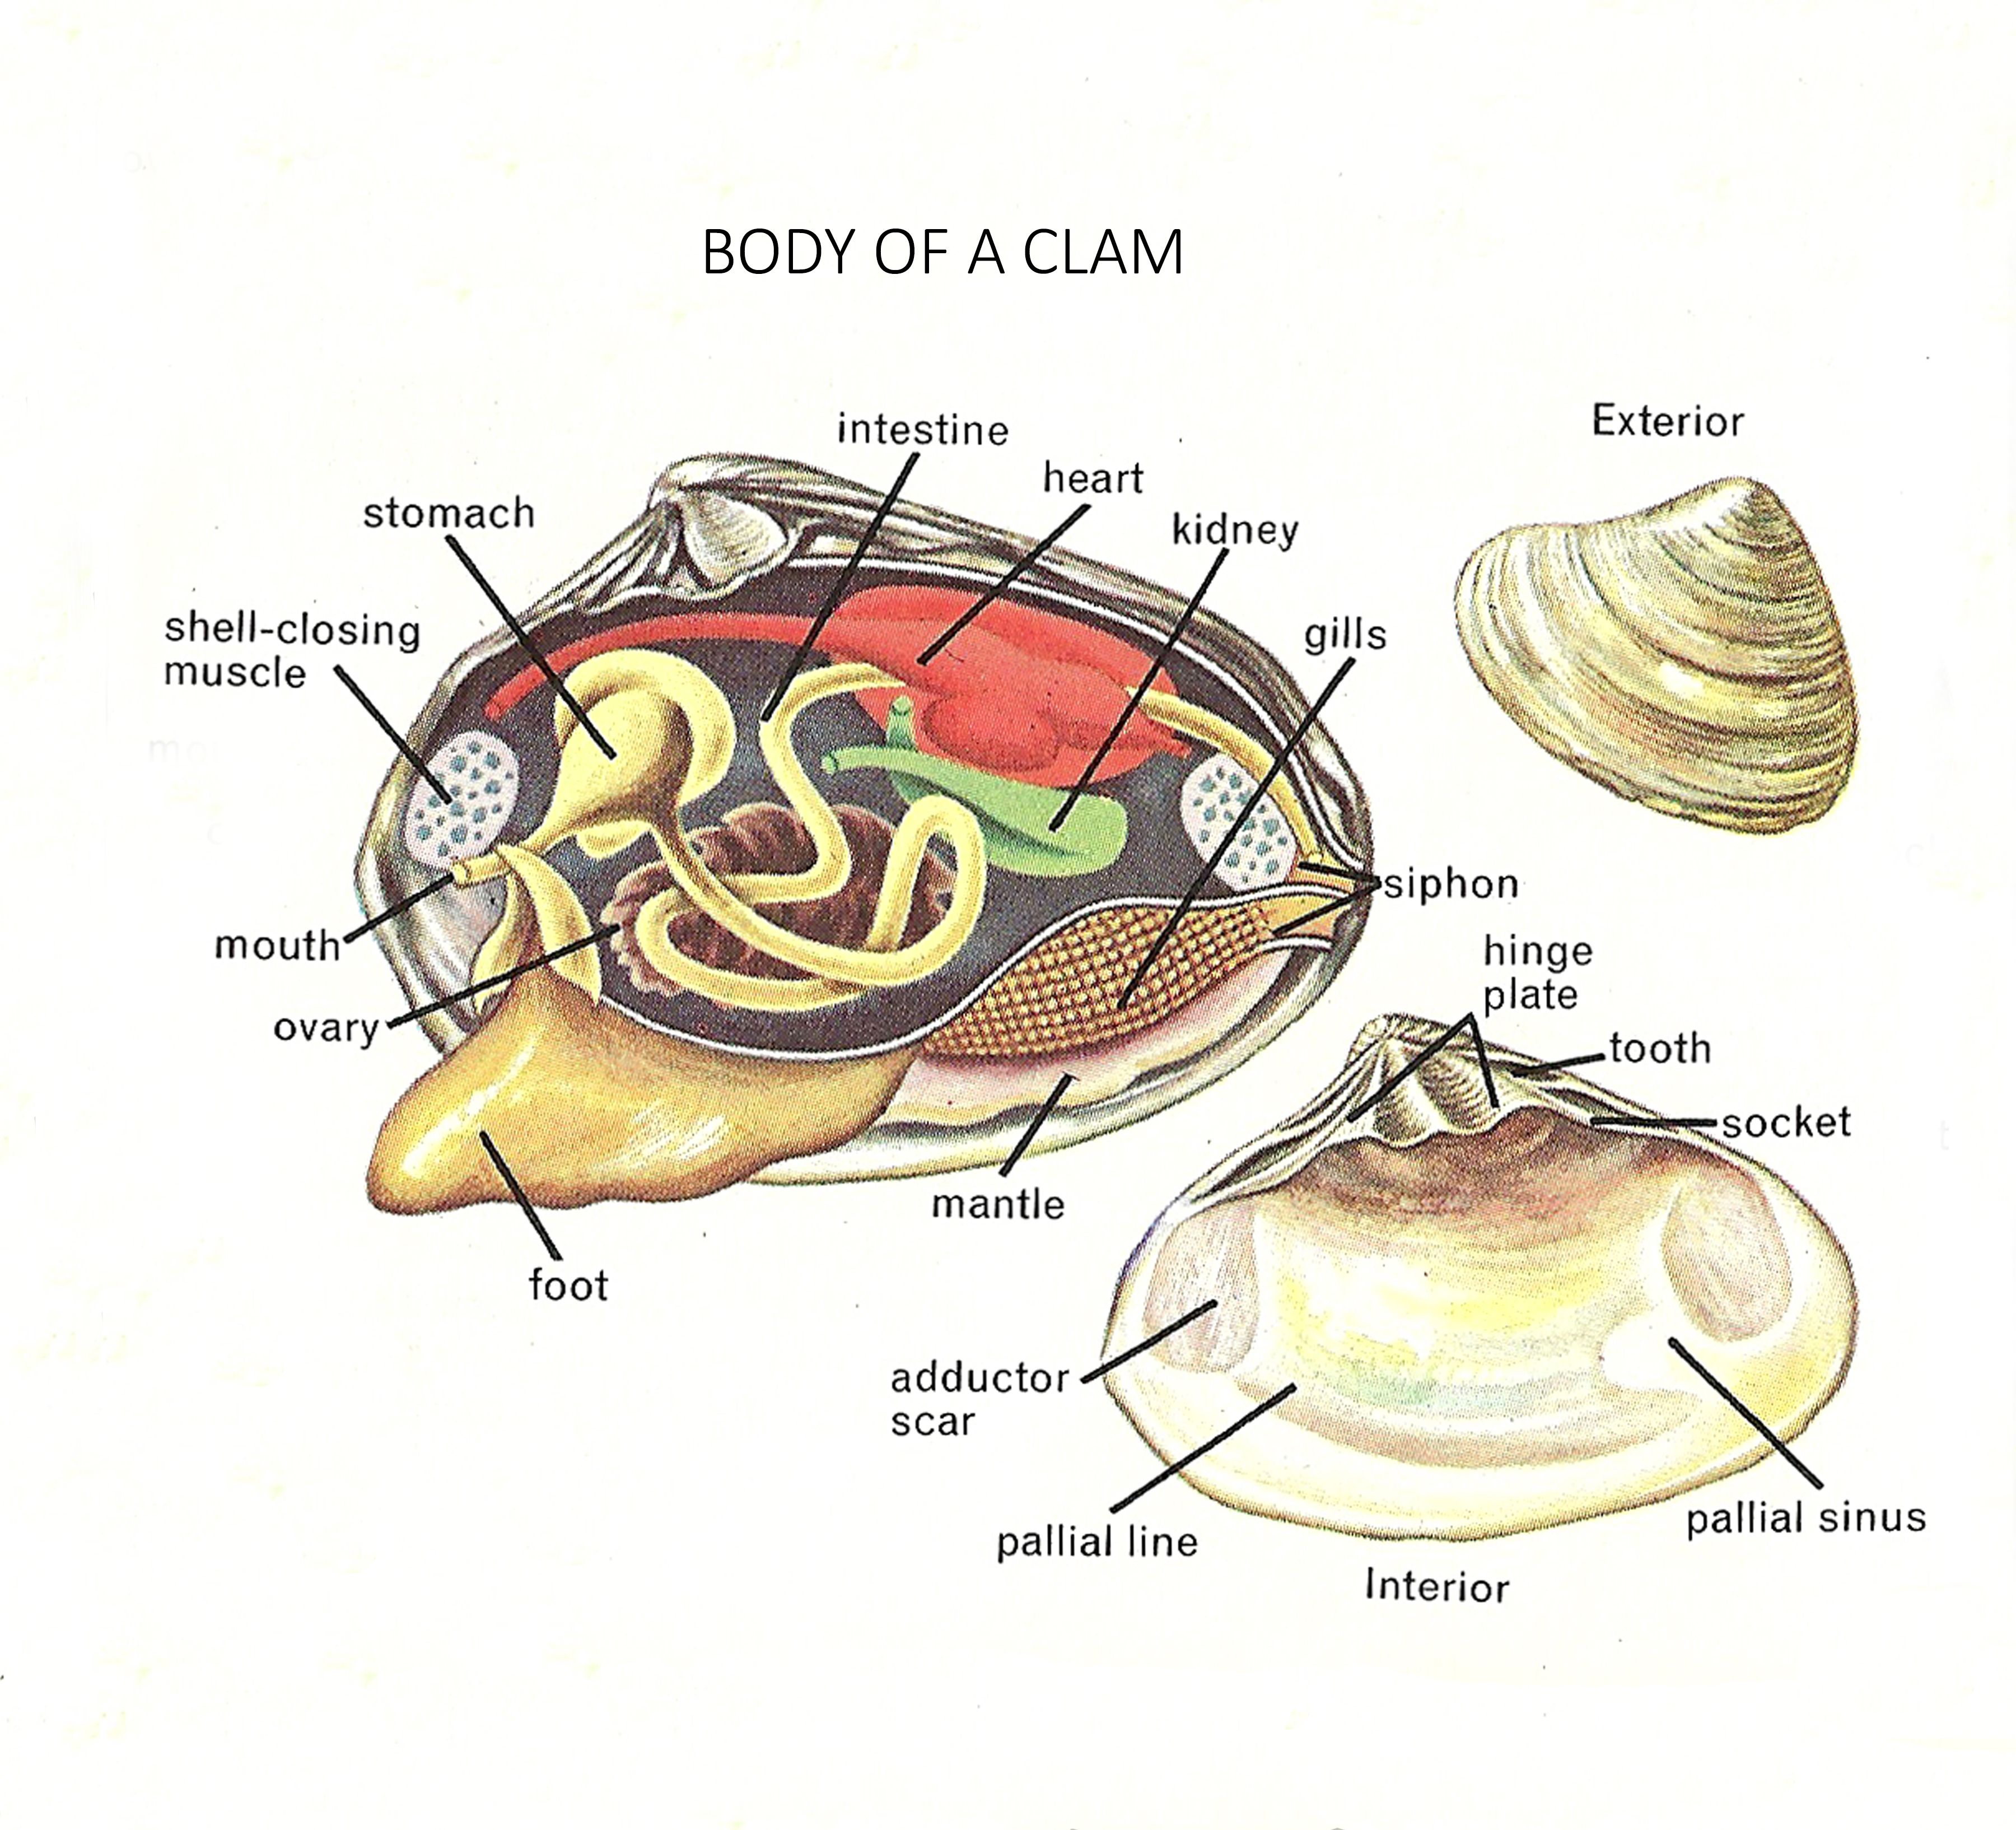 clam diagram labeled citroen c5 towbar wiring anatomy and functions images human